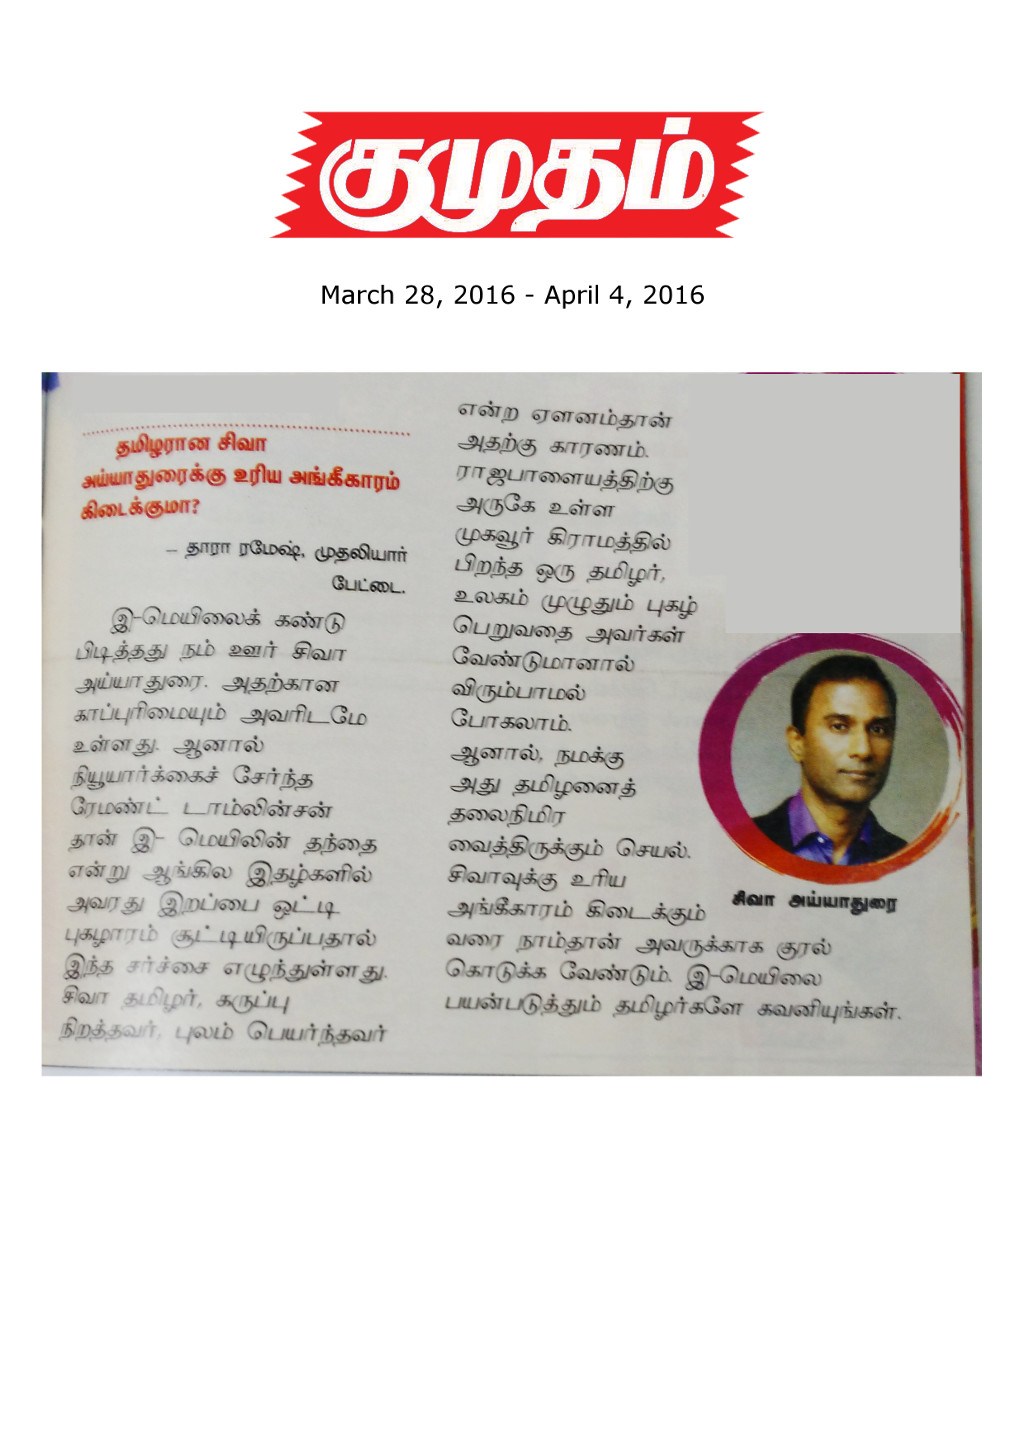 Will Shiva Ayyadurai Get Due Recognition As The Inventor Of Email?